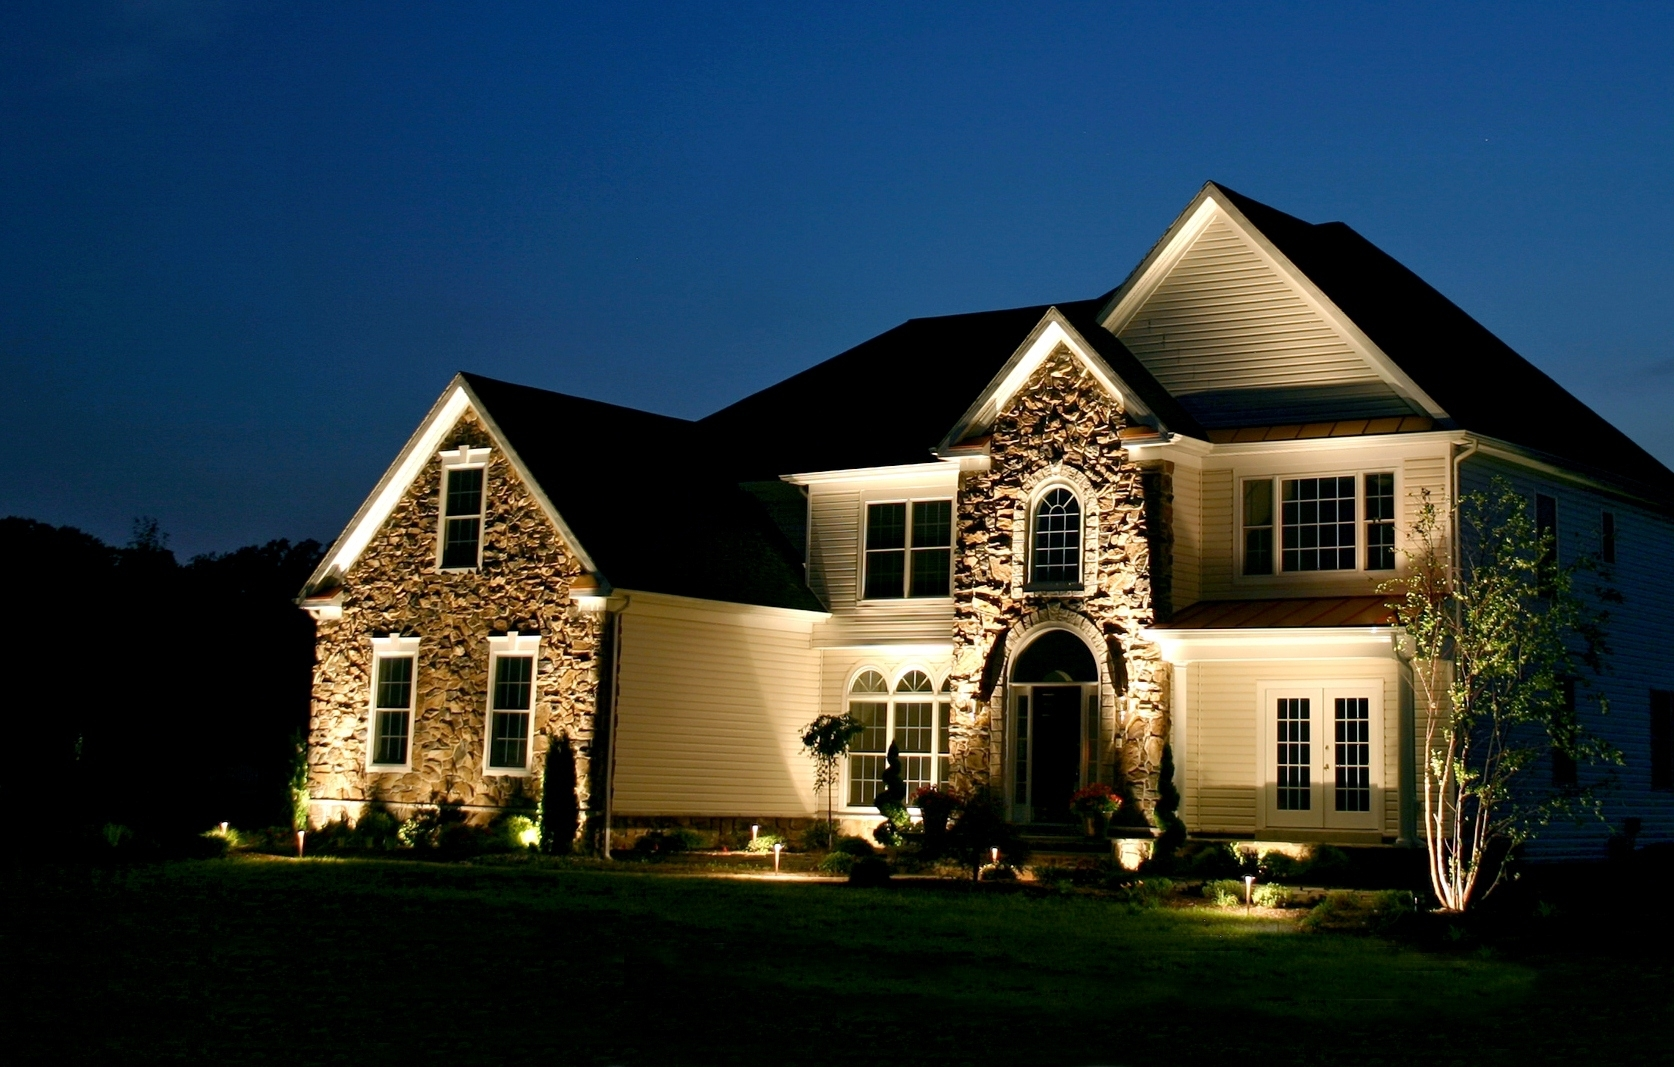 Exterior Lights For House - Pixball in Outdoor Lanterns For House (Image 4 of 20)